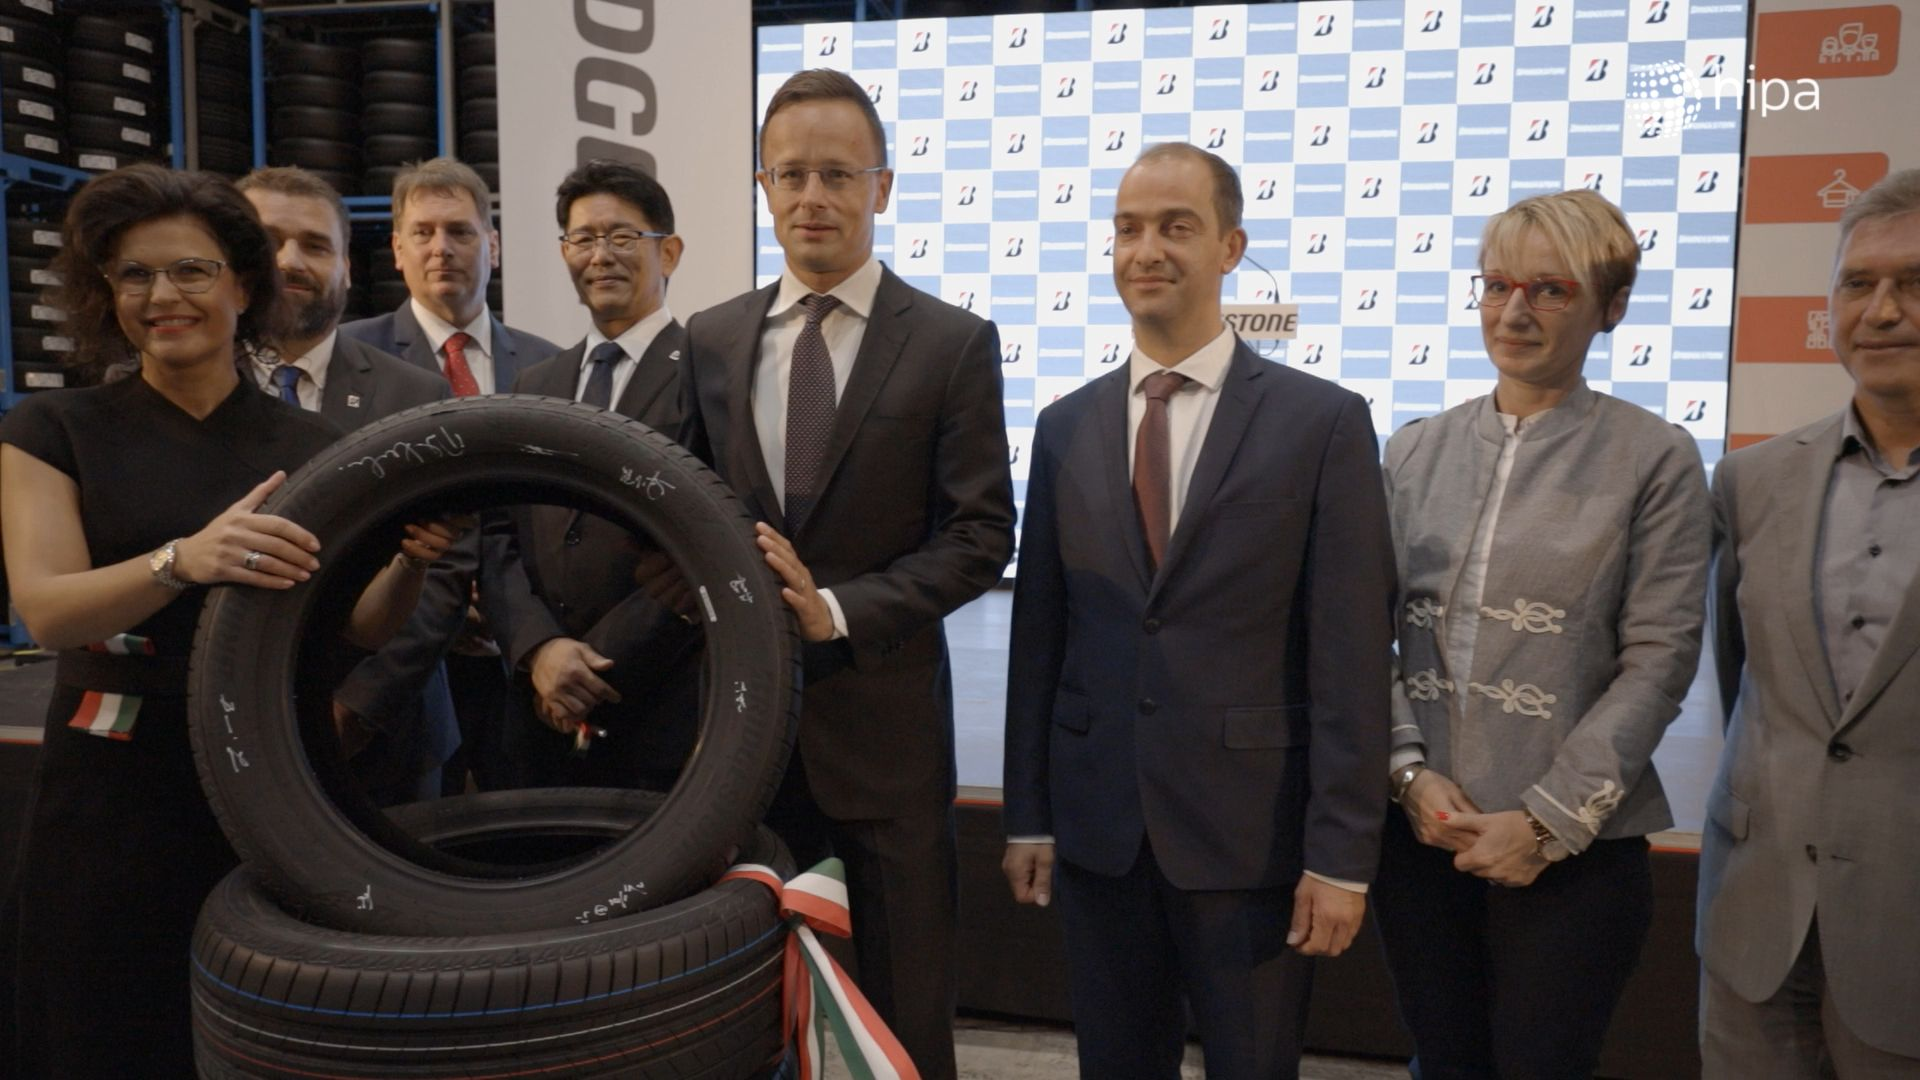 AI-based production further expands in Bridgestone's unit in Tatabánya - VIDEO REPORT